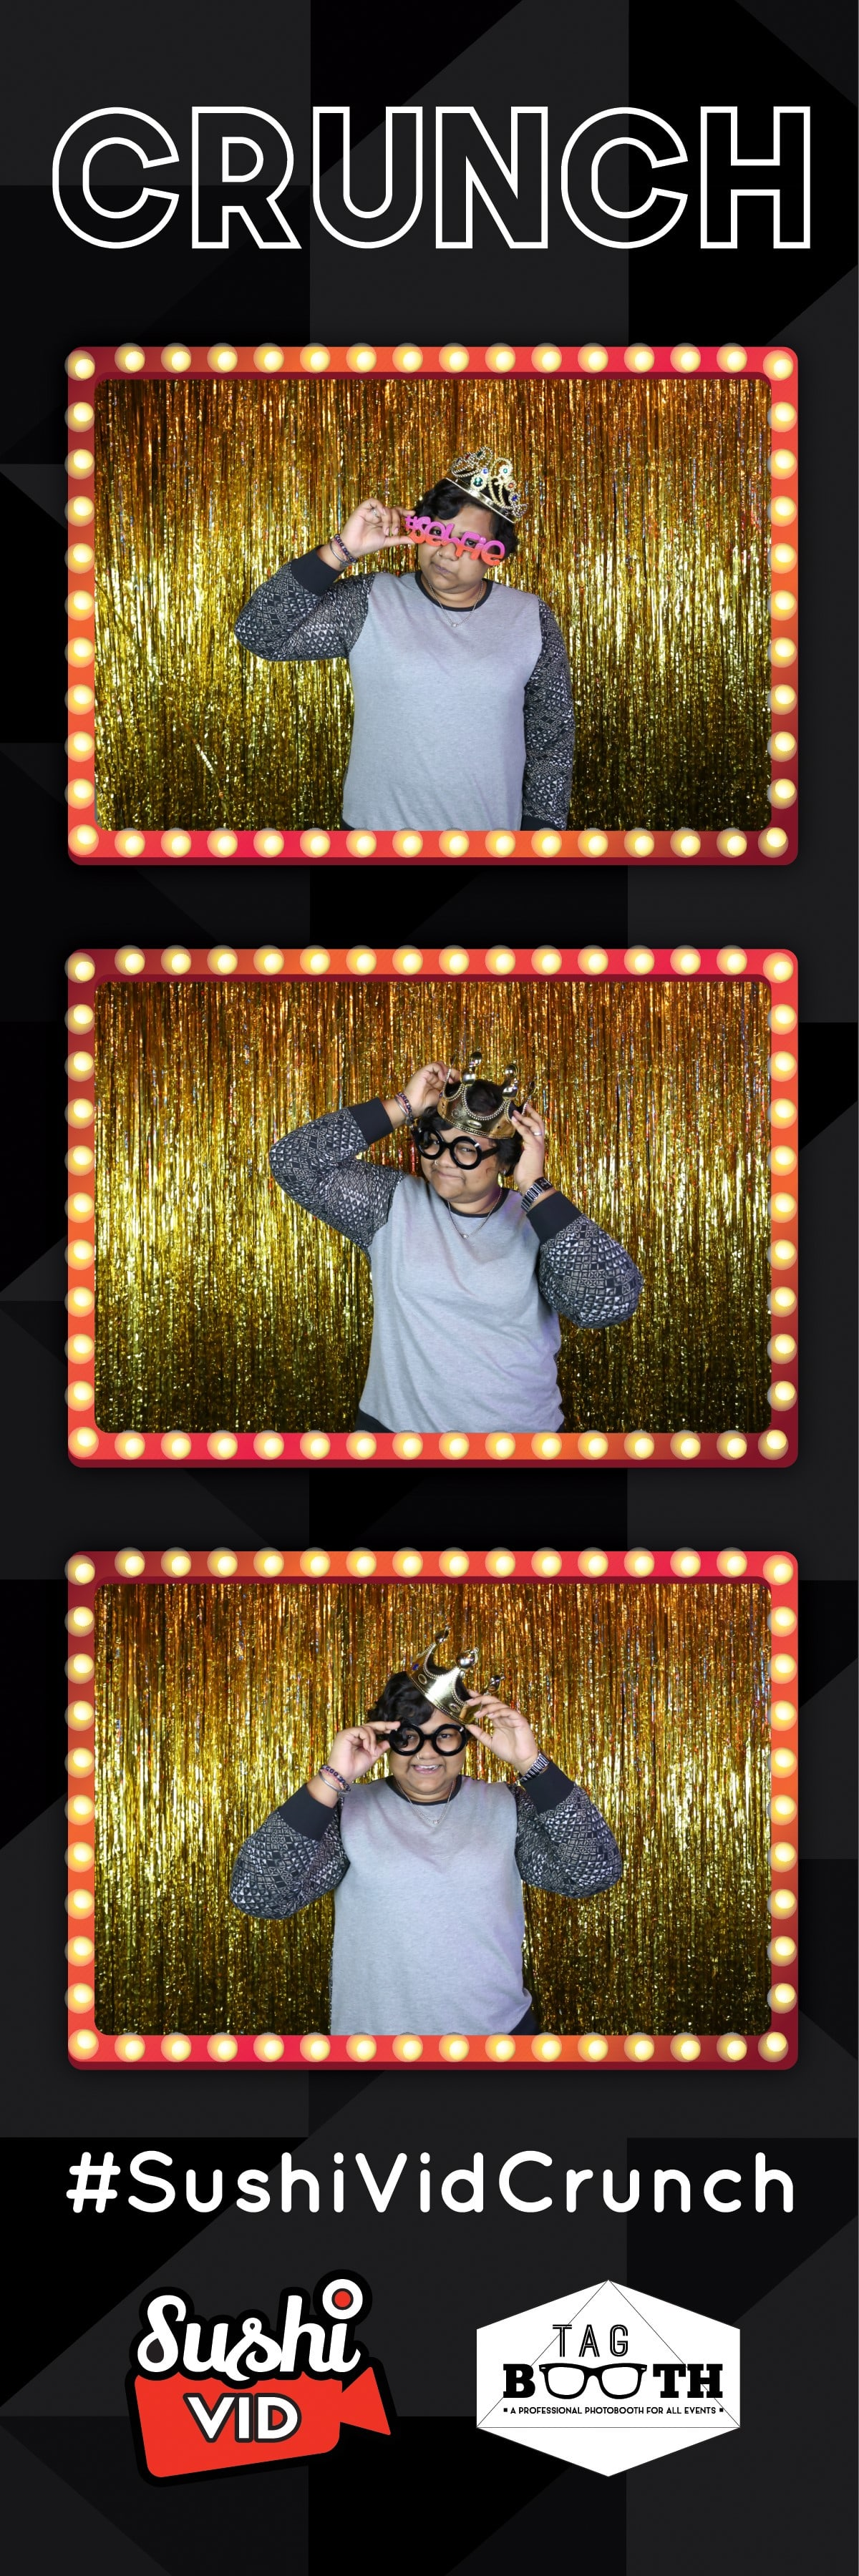 Sushivid+crunch+tagbooth1+1